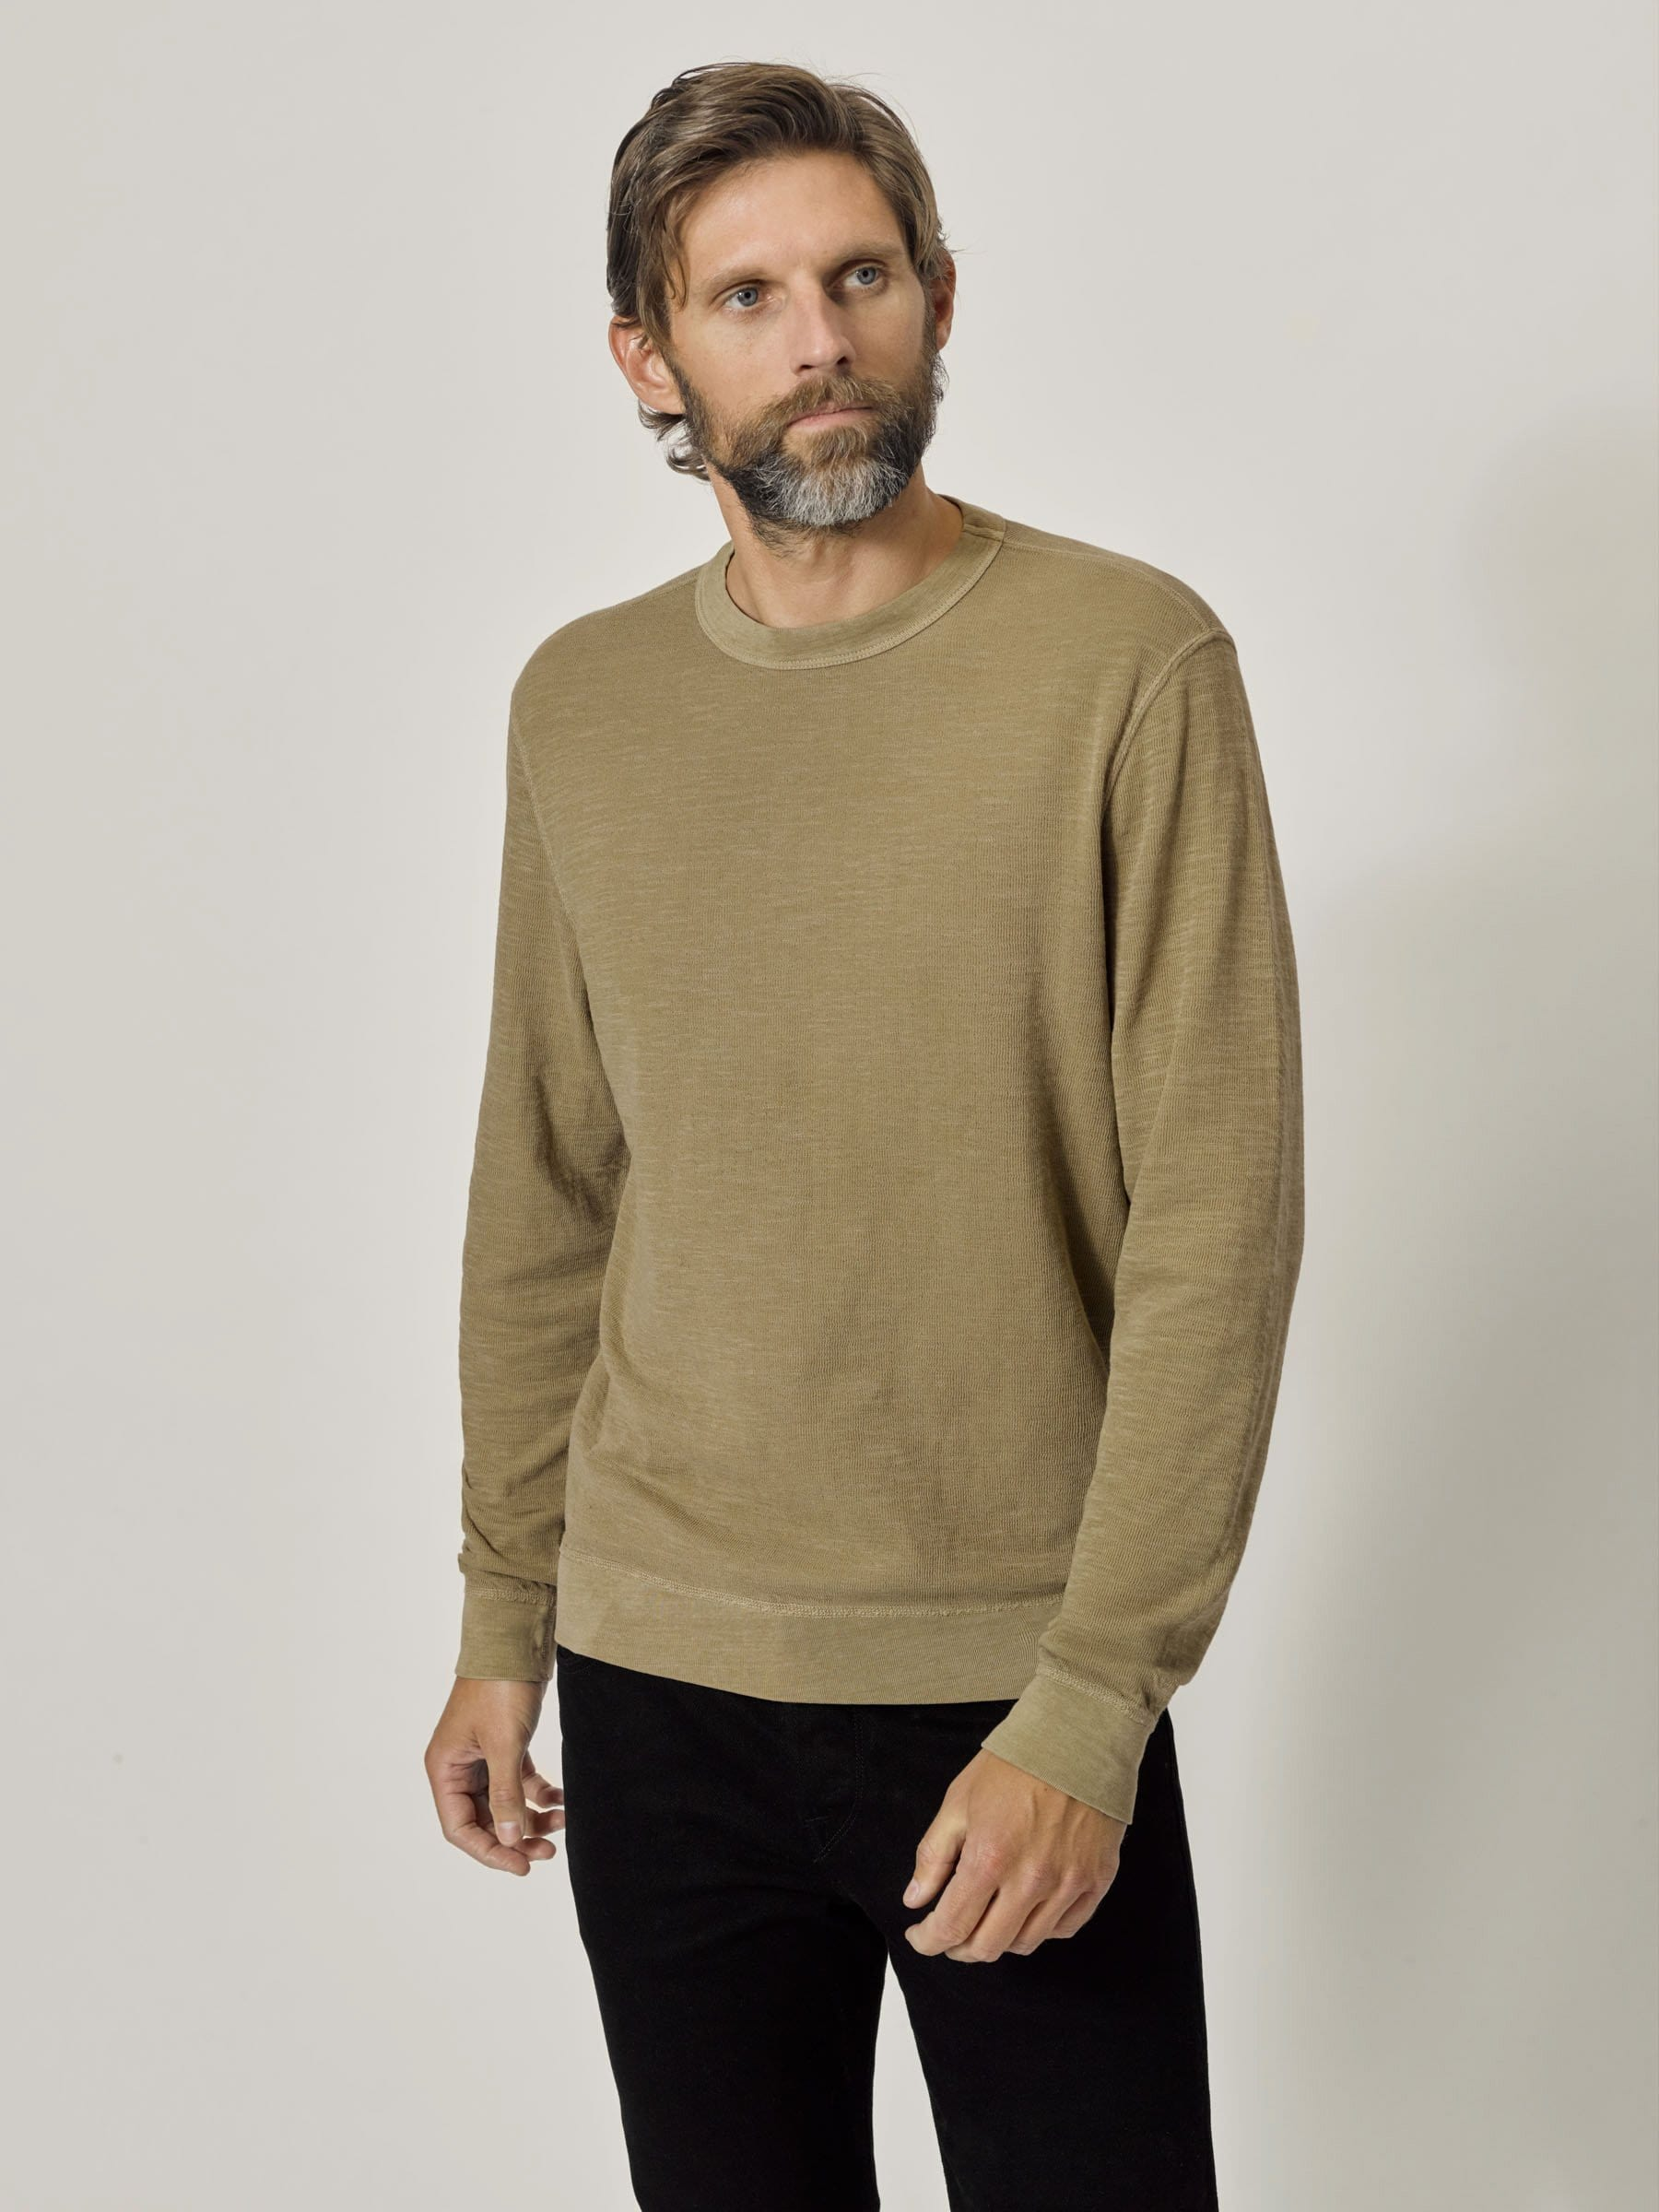 Buck Mason - Dune Venice Wash Lightweight Double Slub Sweatshirt